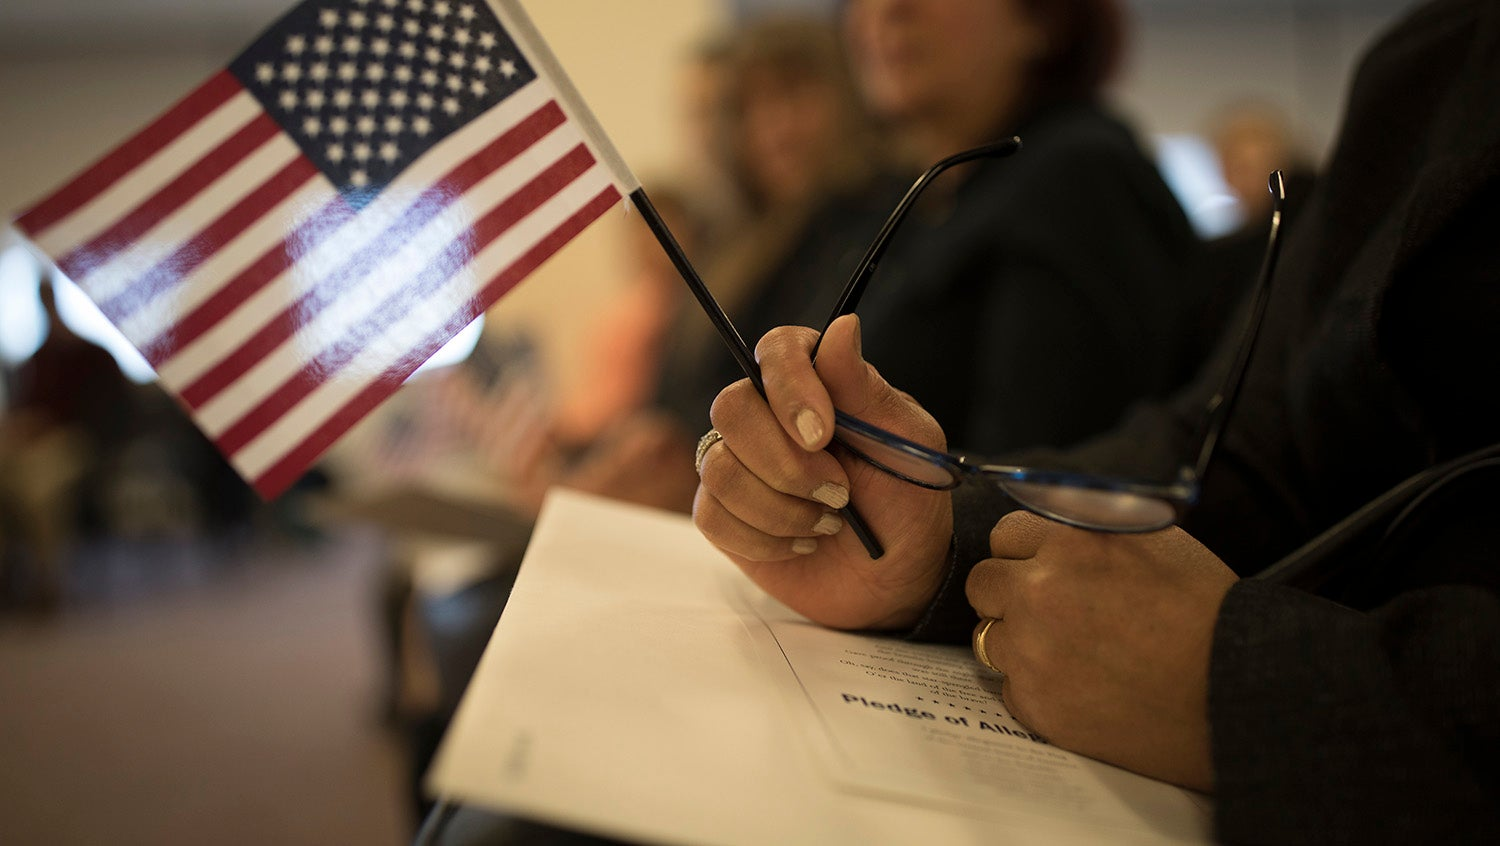 Woman holds American flag during a naturalization ceremony